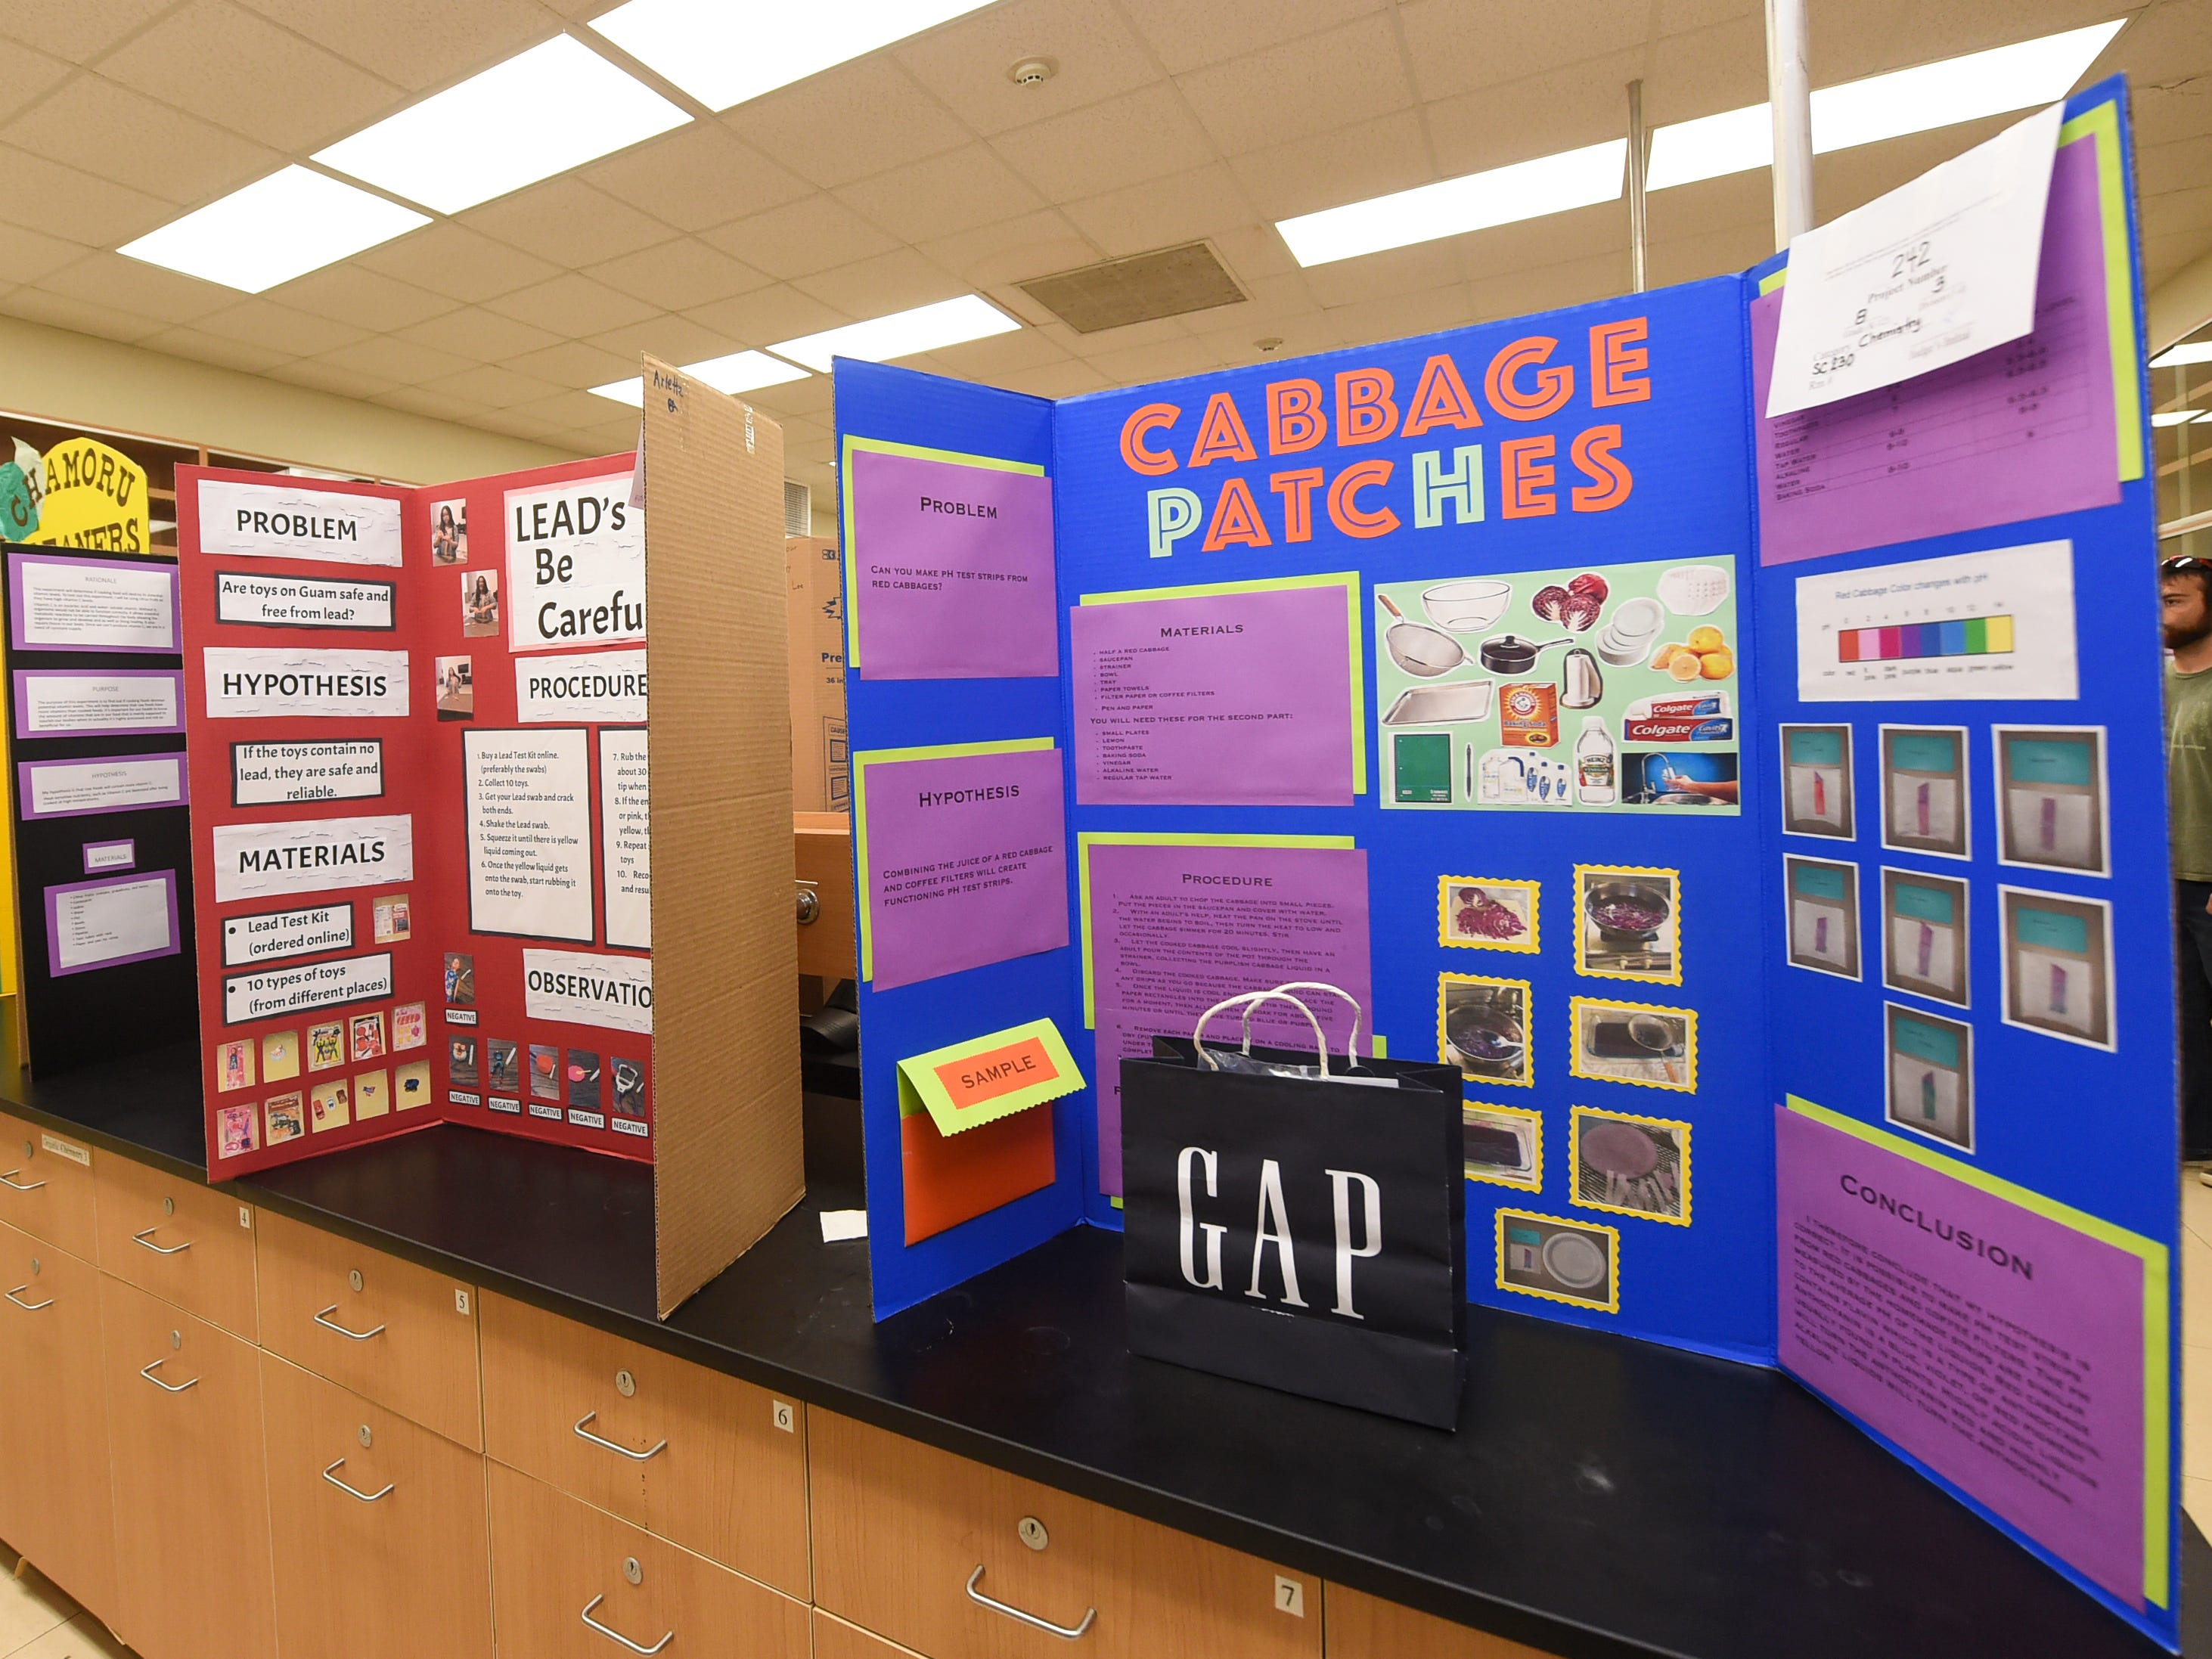 A variety of different science projects are displayed during the 41st Annual Islandwide Science Fair at the University of Guam in Mangilao, May 11, 2019.